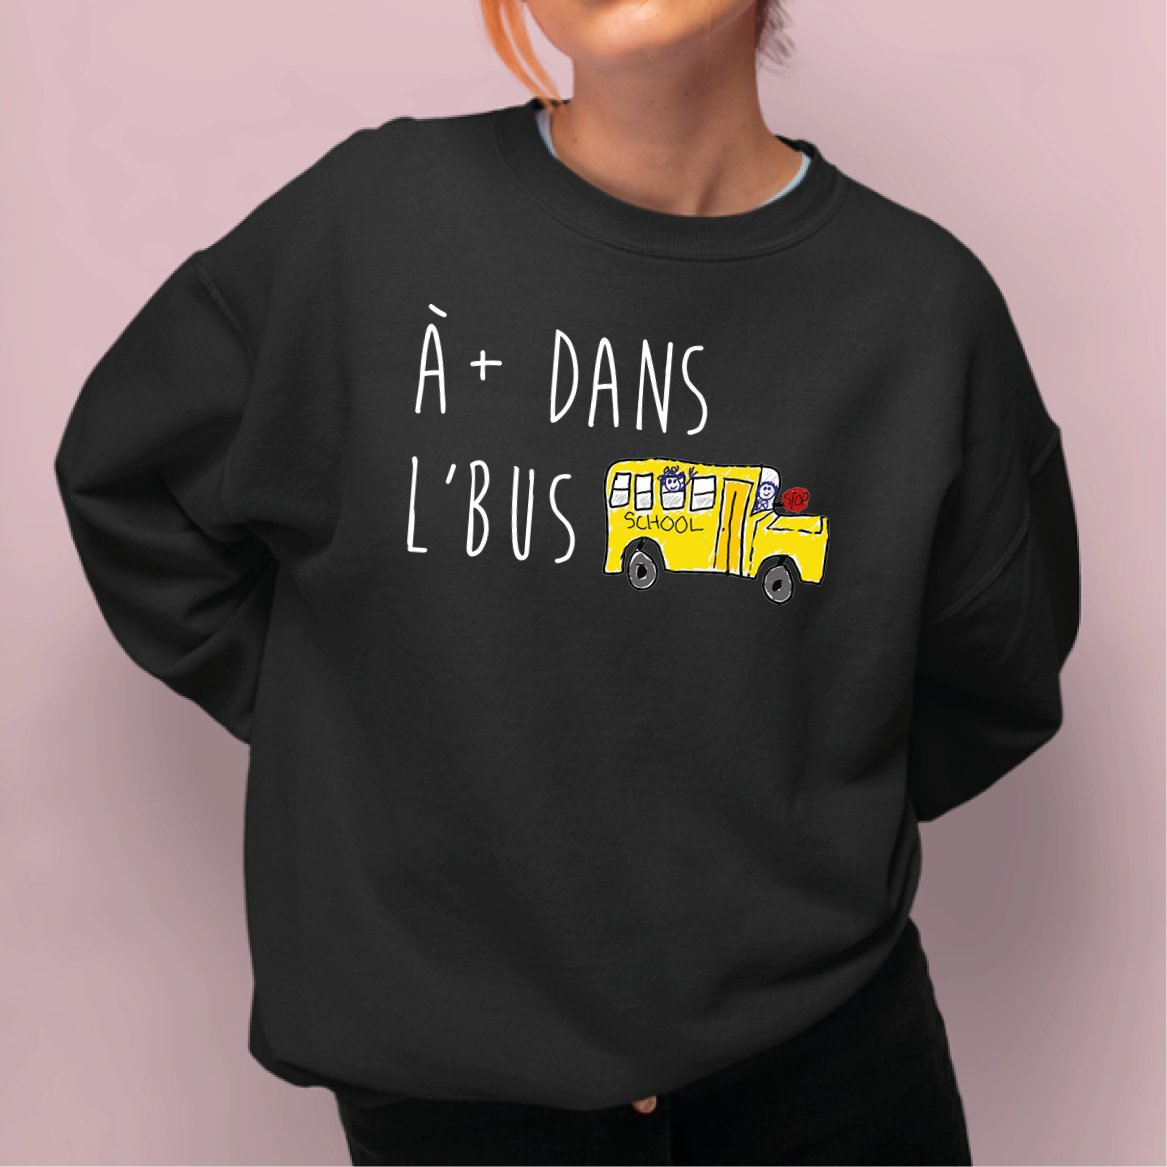 Sweat Adulte À plus dans l'bus Noir